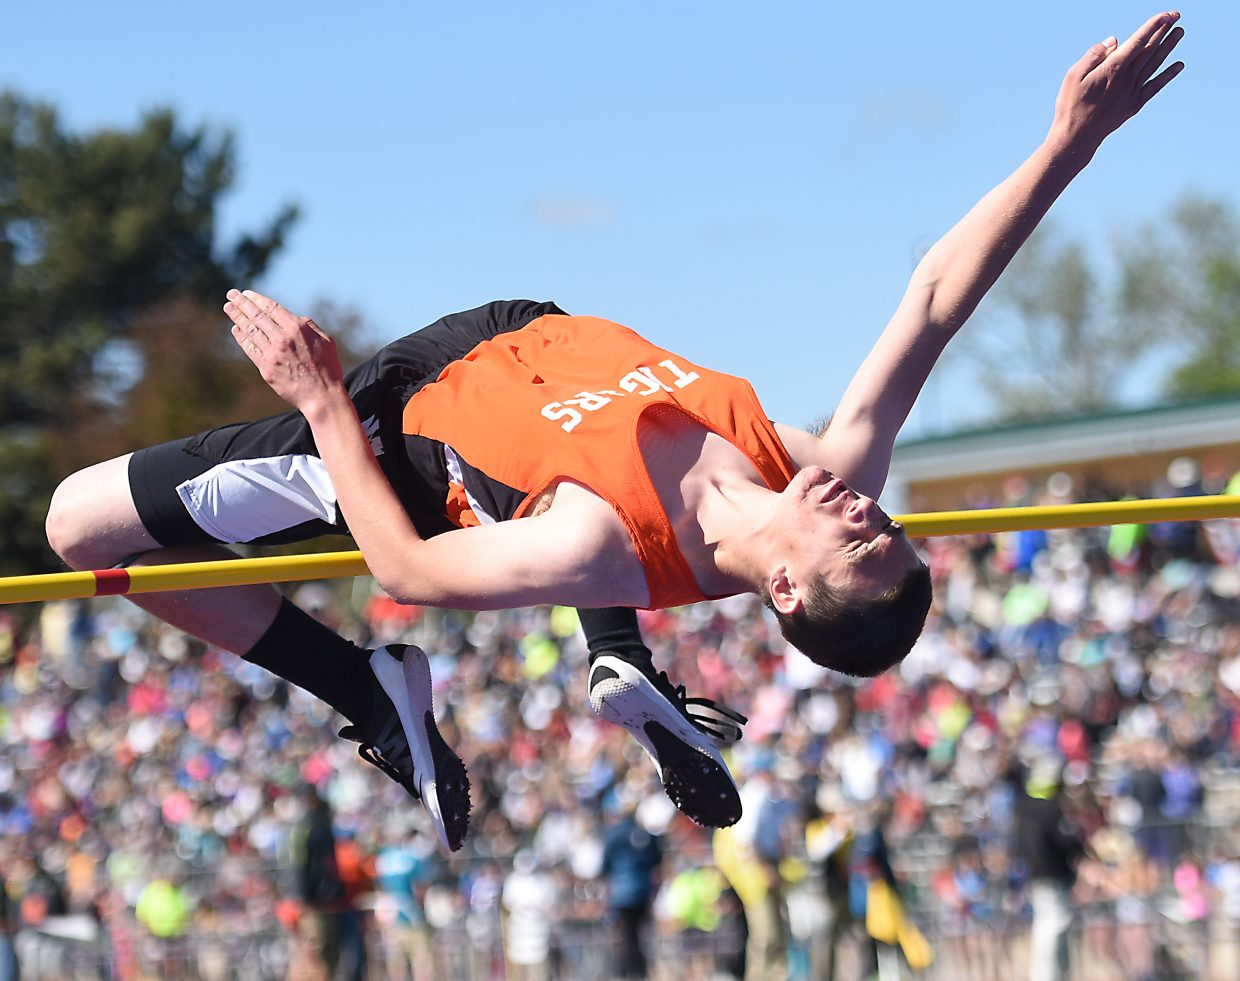 Thomas Rauch tries to bend over the bar during the boys high jump competition Saturday at the state track meet in Lakewood.